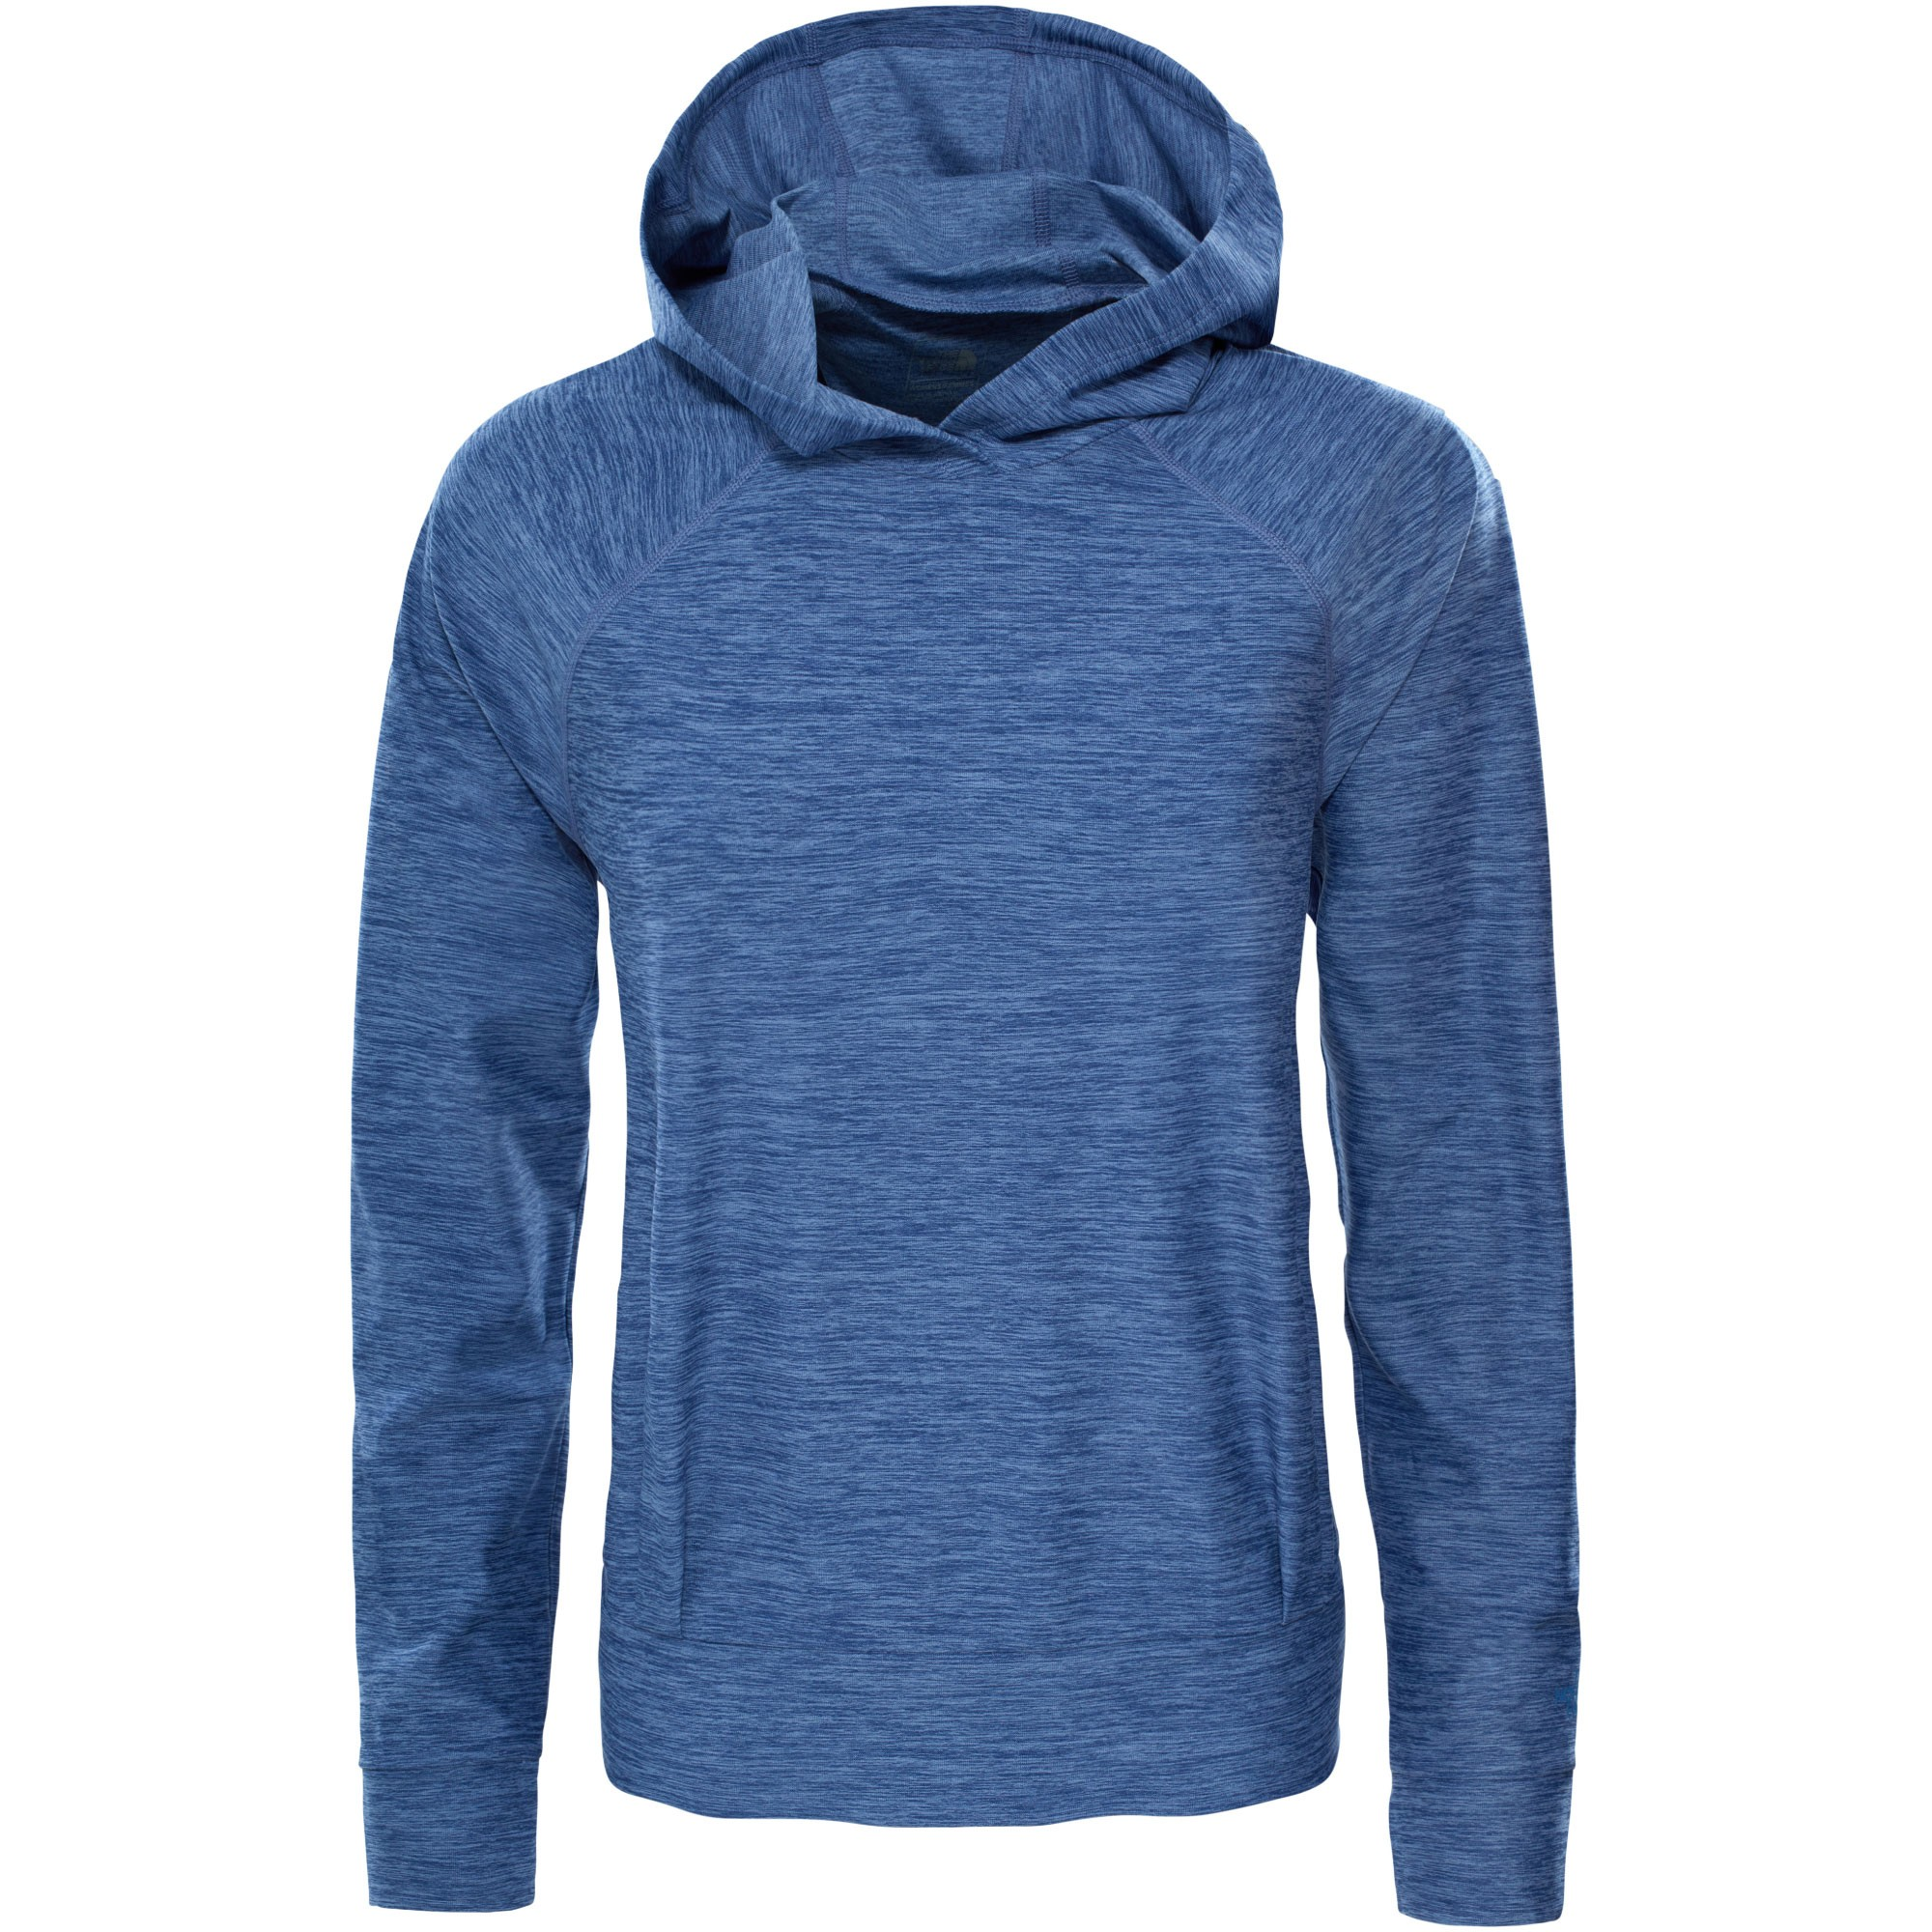 THE NORTH FACE - Motivation Women's Classic Hoodie